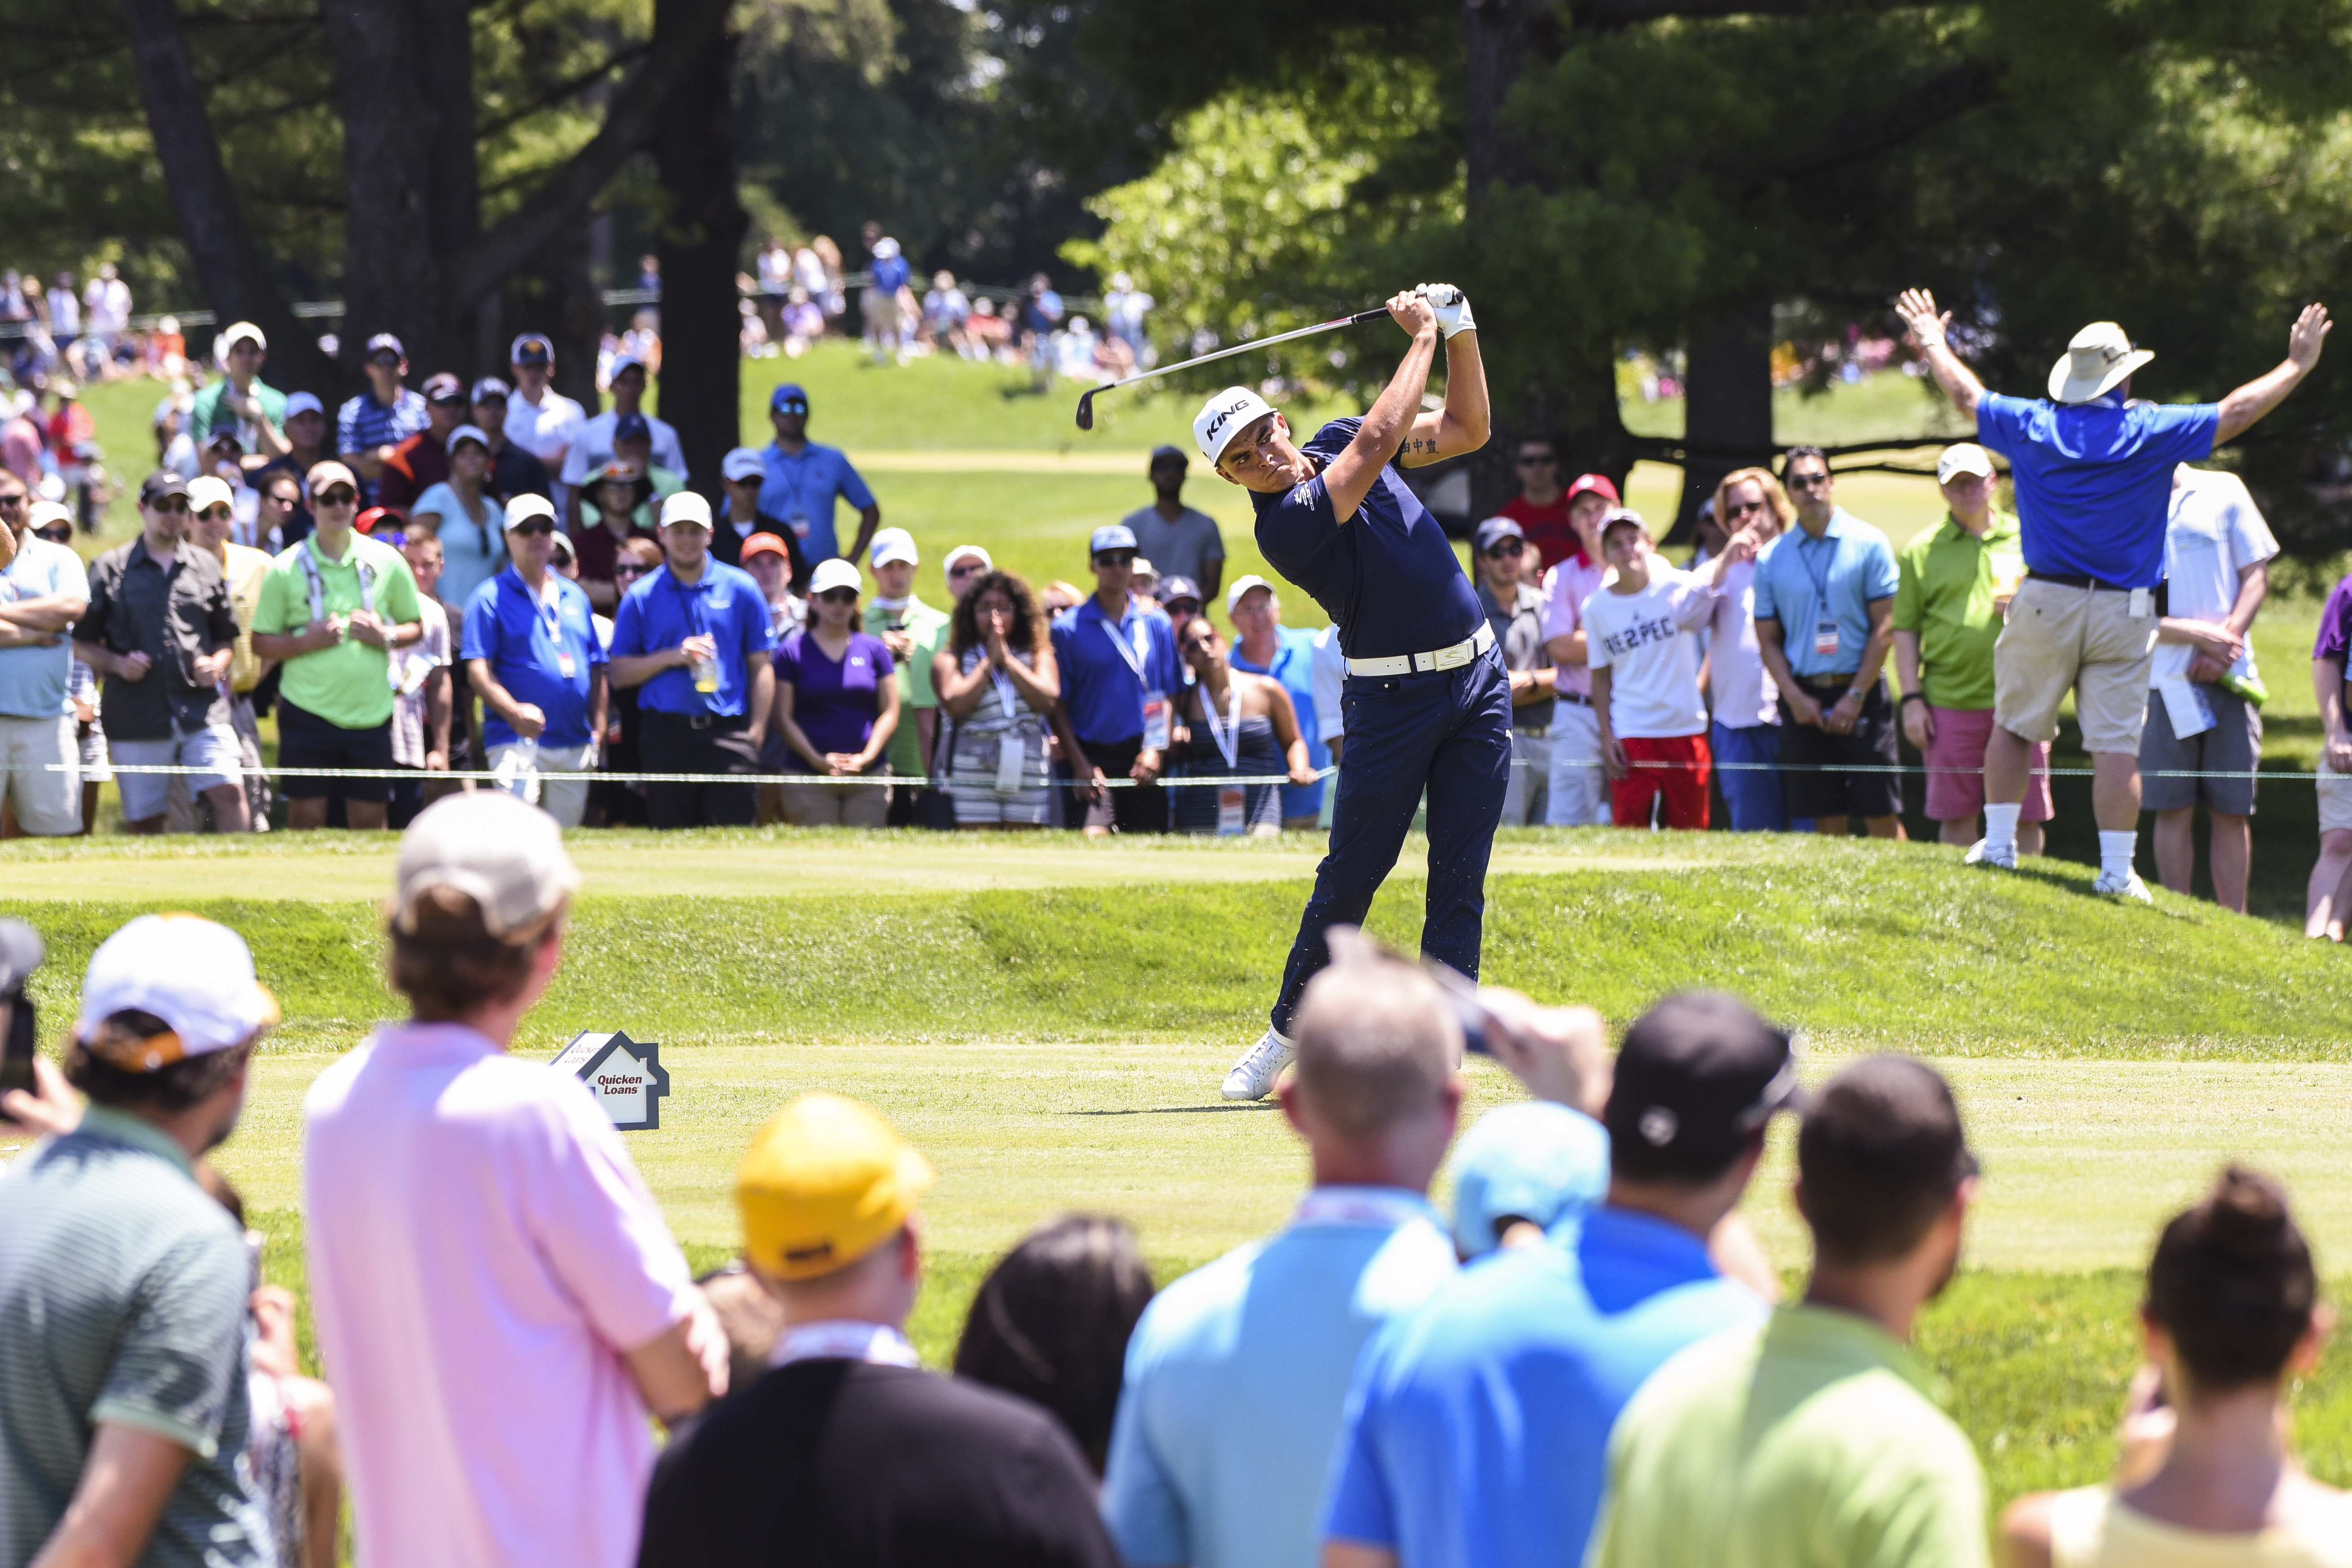 Things to Do in DC Quicken Loans National Rickie Fowler Professional Golf Tournament benefitting the Tiger Woods Foundation TPC Course Potomac MD family fun event